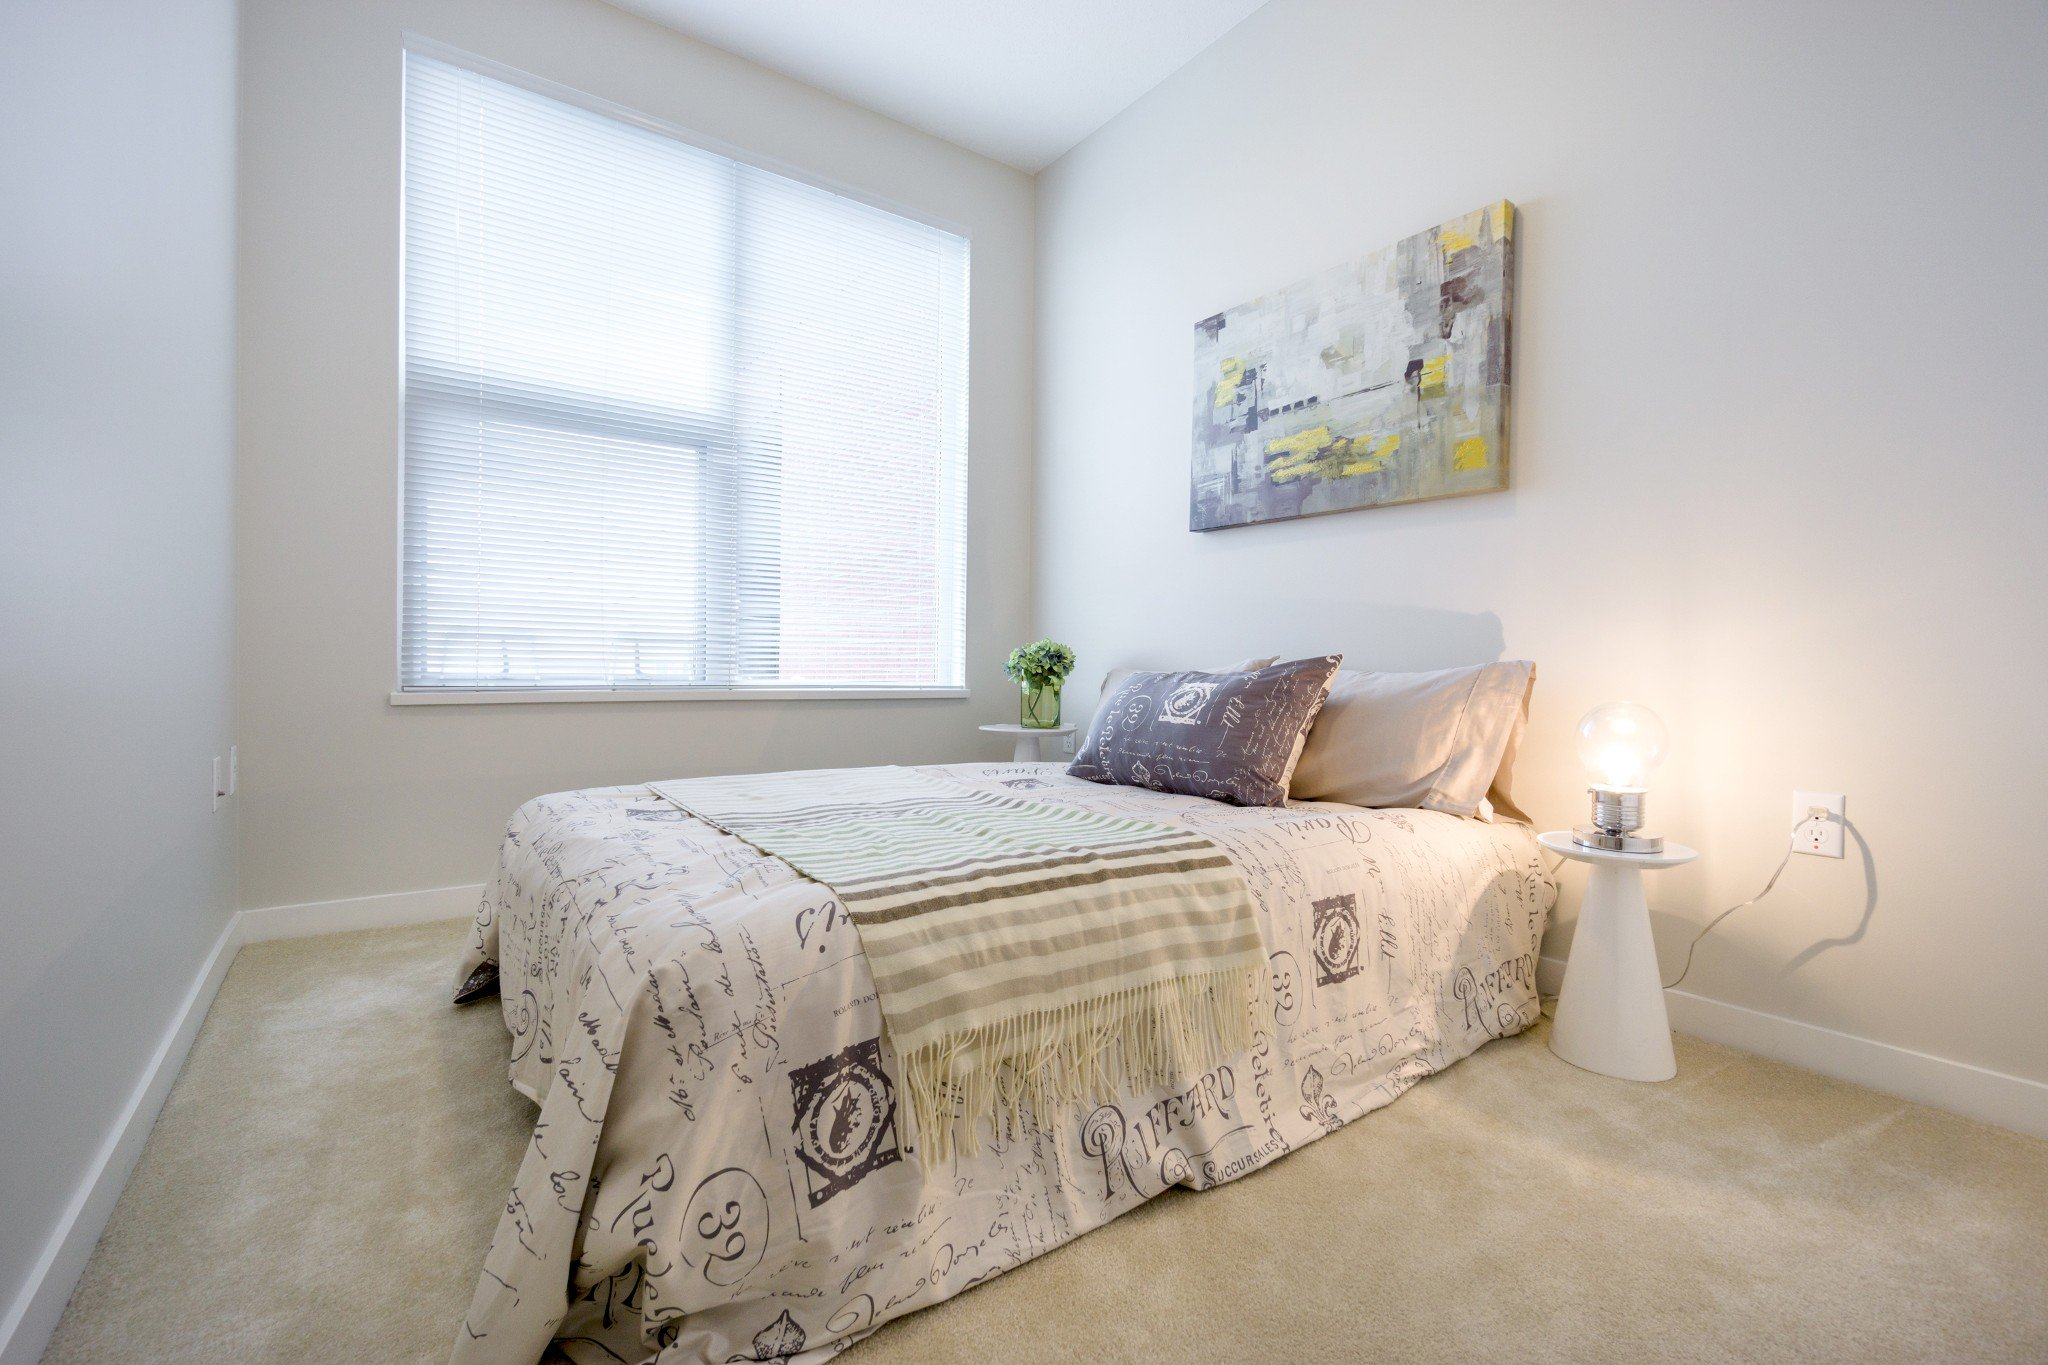 """Photo 21: Photos: 402 9311 ALEXANDRA Road in Richmond: West Cambie Condo for sale in """"ALEXANDRA COURT"""" : MLS®# R2266613"""